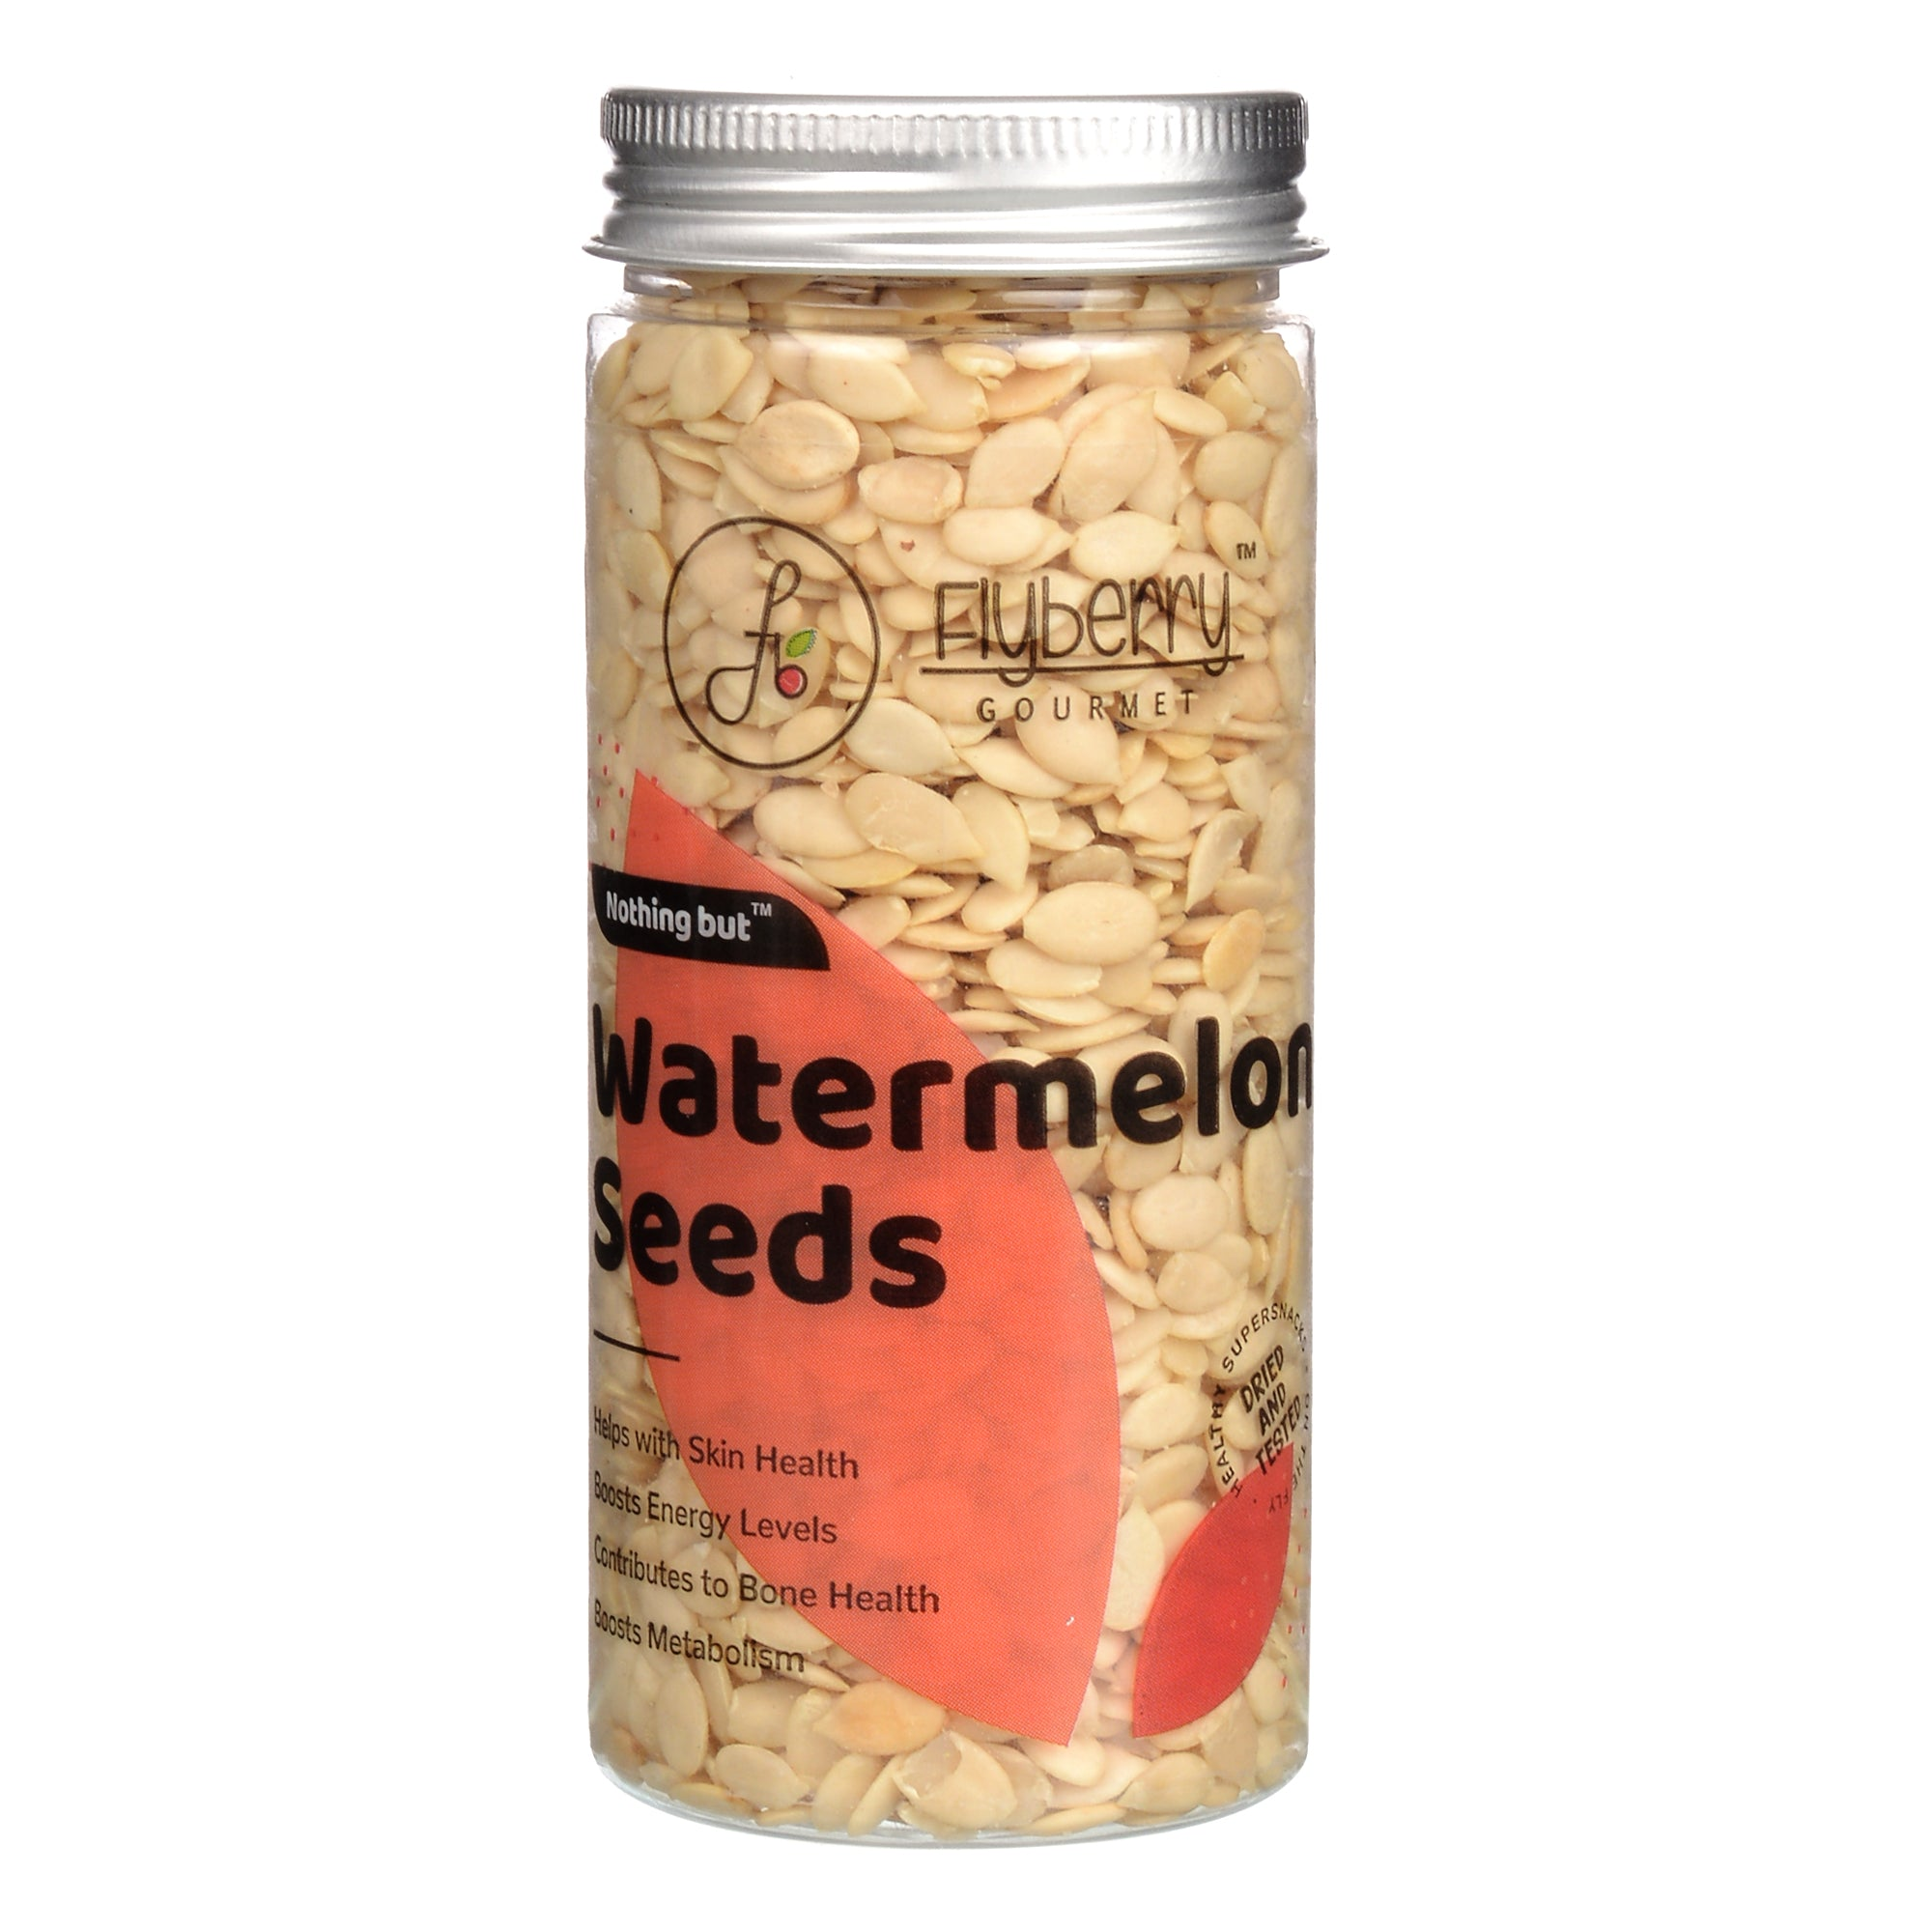 Flyberry Watermelon Seeds